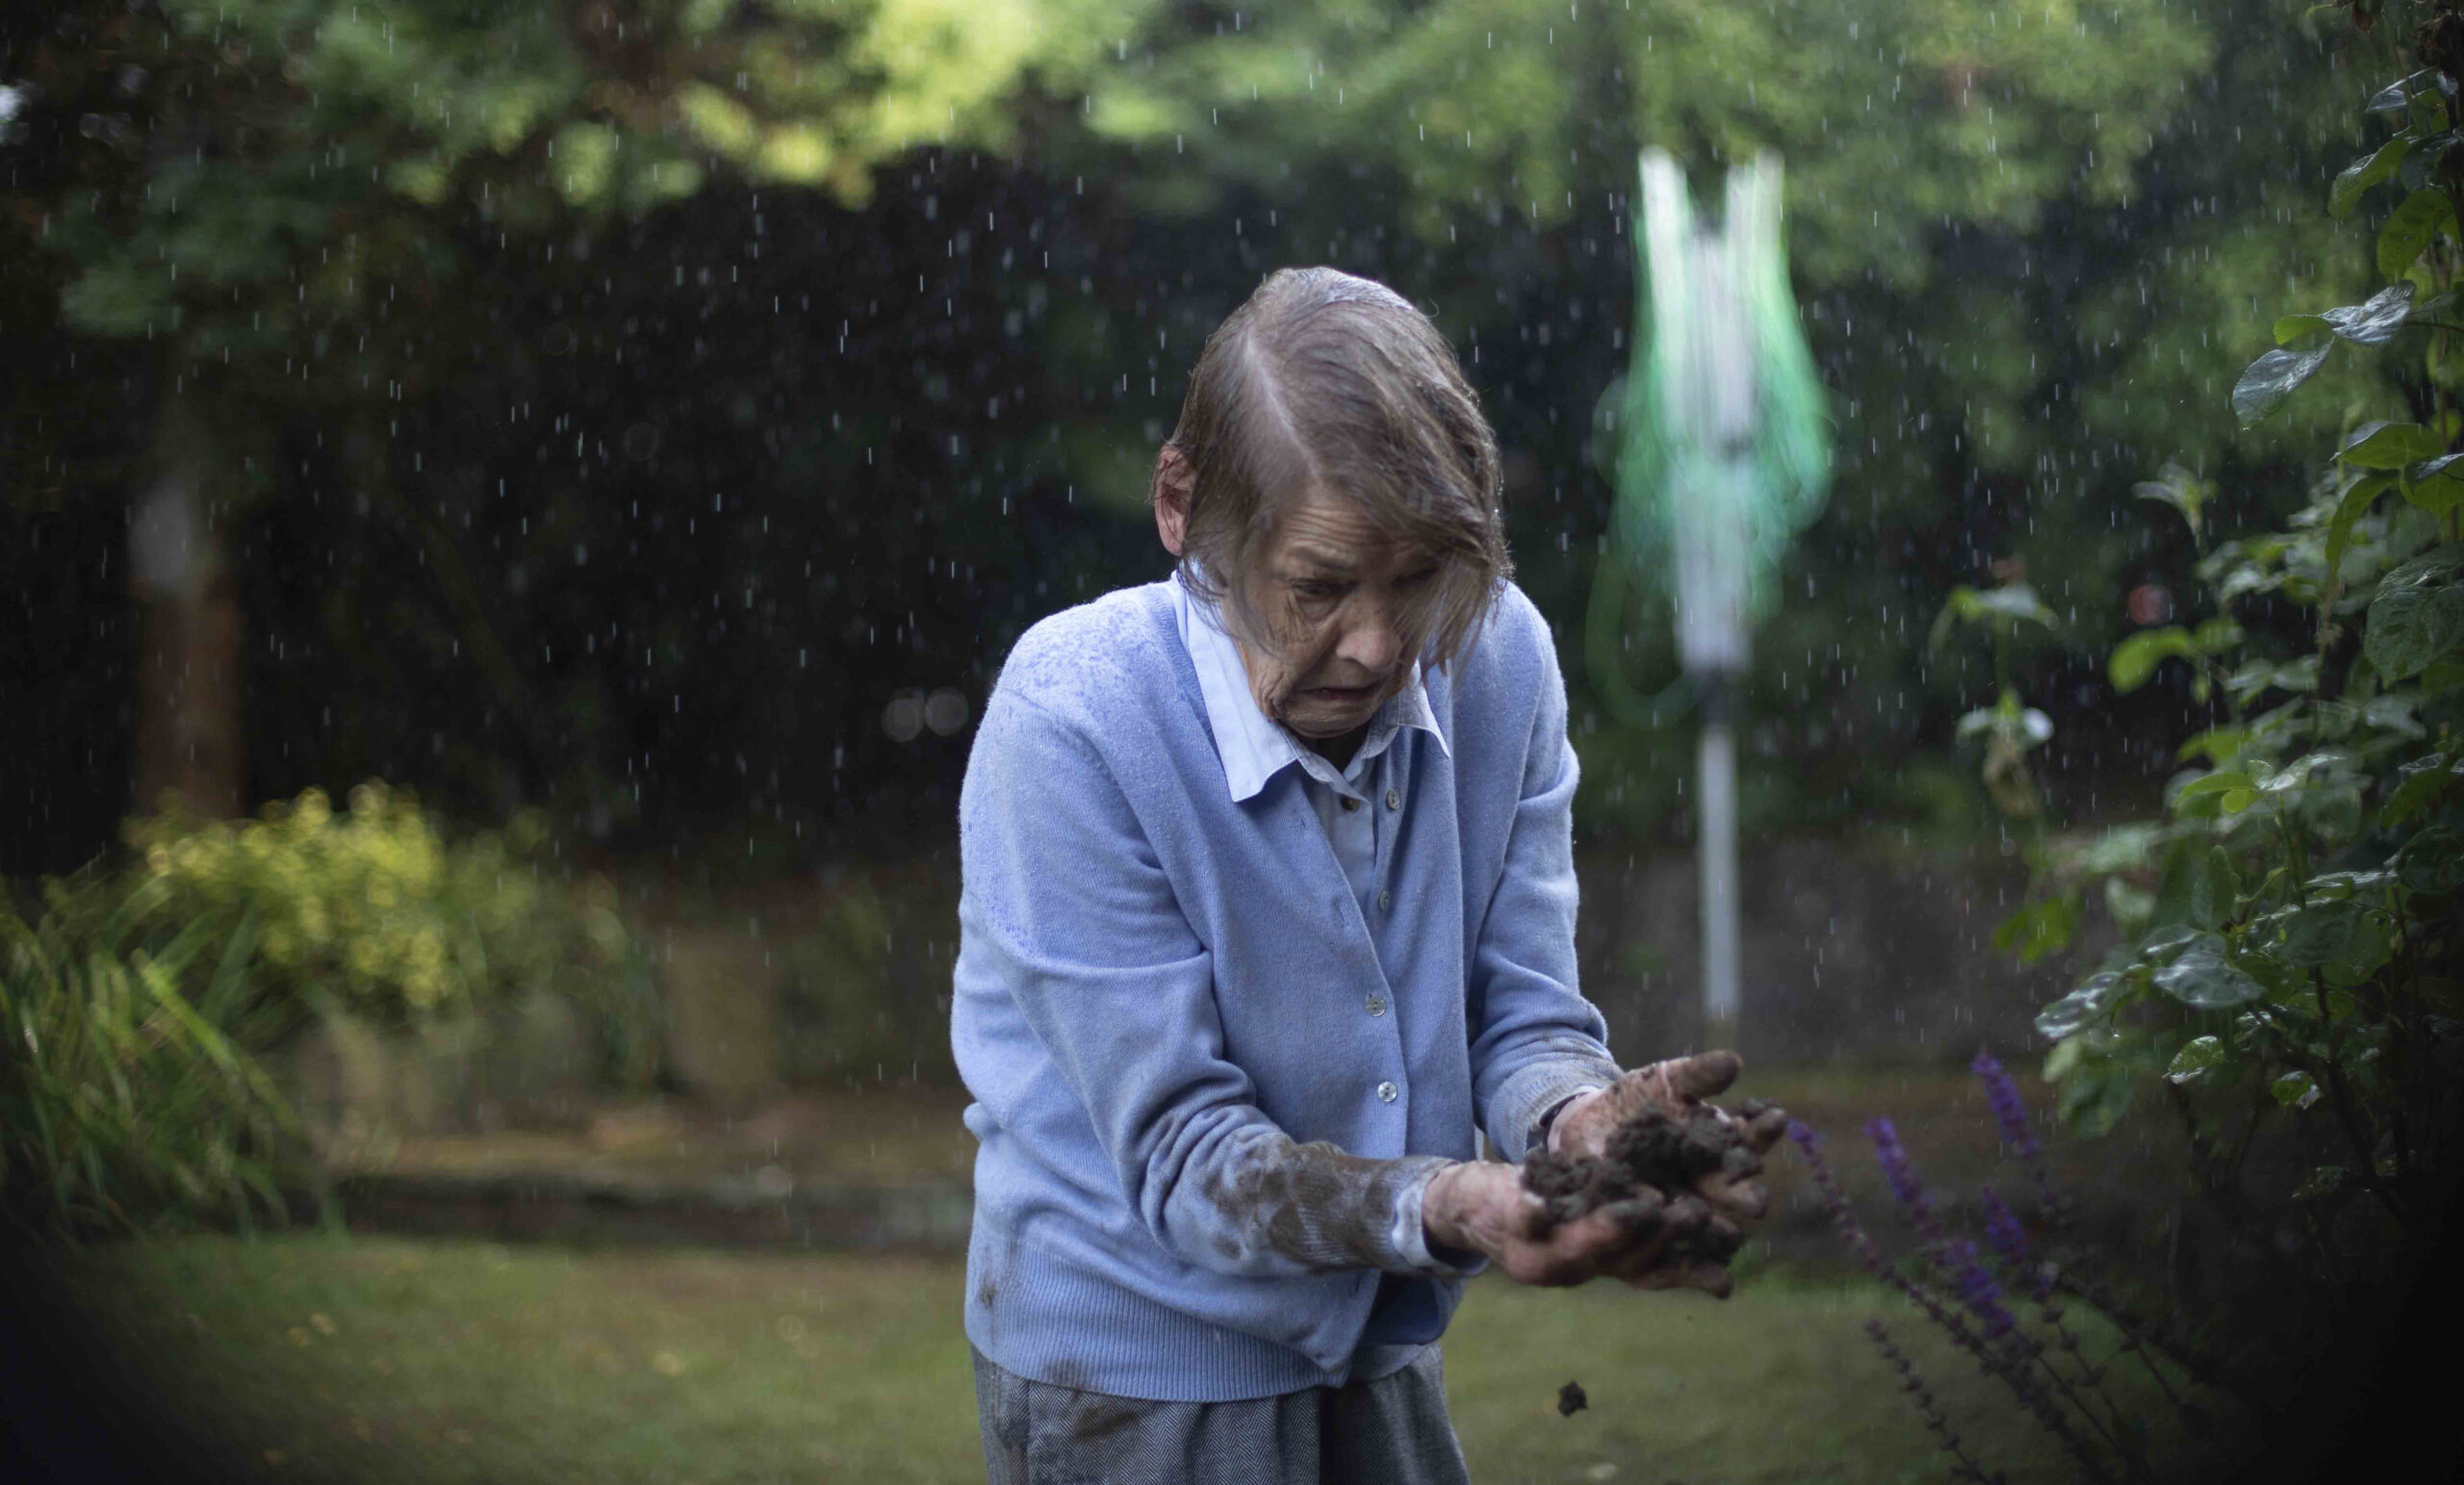 An elderly woman in a blue sweater and shirt stands in the rain in a garden looking with fear at her hands, which are full of dirt. The arms of her sweater and her pants are stained with dirt.